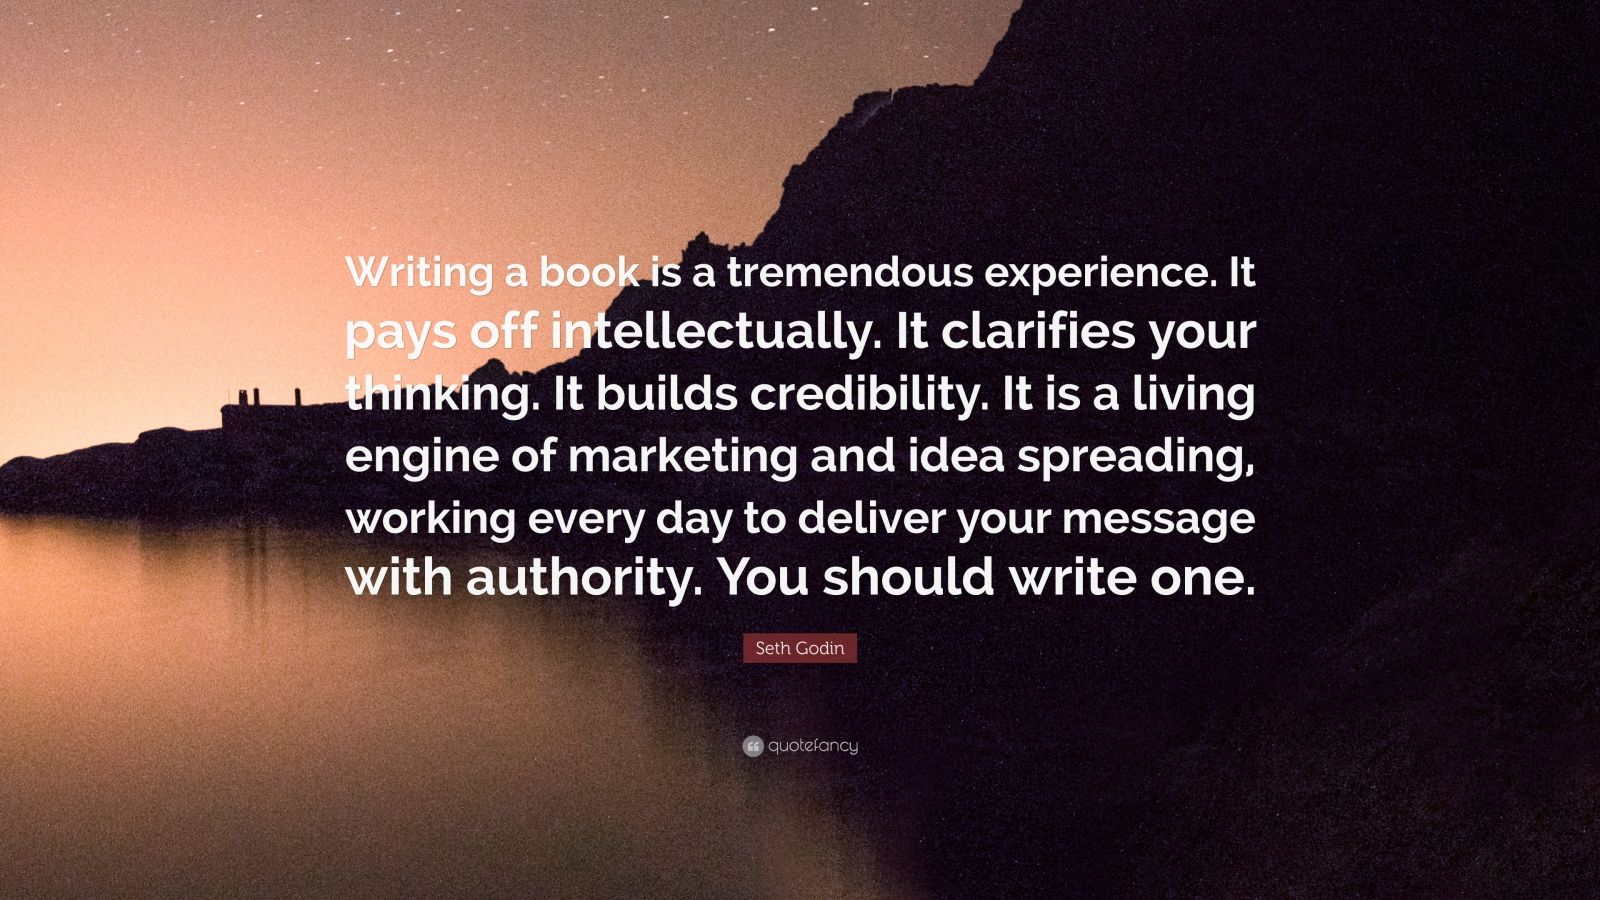 """Seth Godin Quote: """"Writing a book is a tremendous experience. It pays off intellectually. It clarifies your thinking. It builds credibility. It is a living engine of marketing and idea spreading, working every day to deliver your message with authority. You should write one."""""""